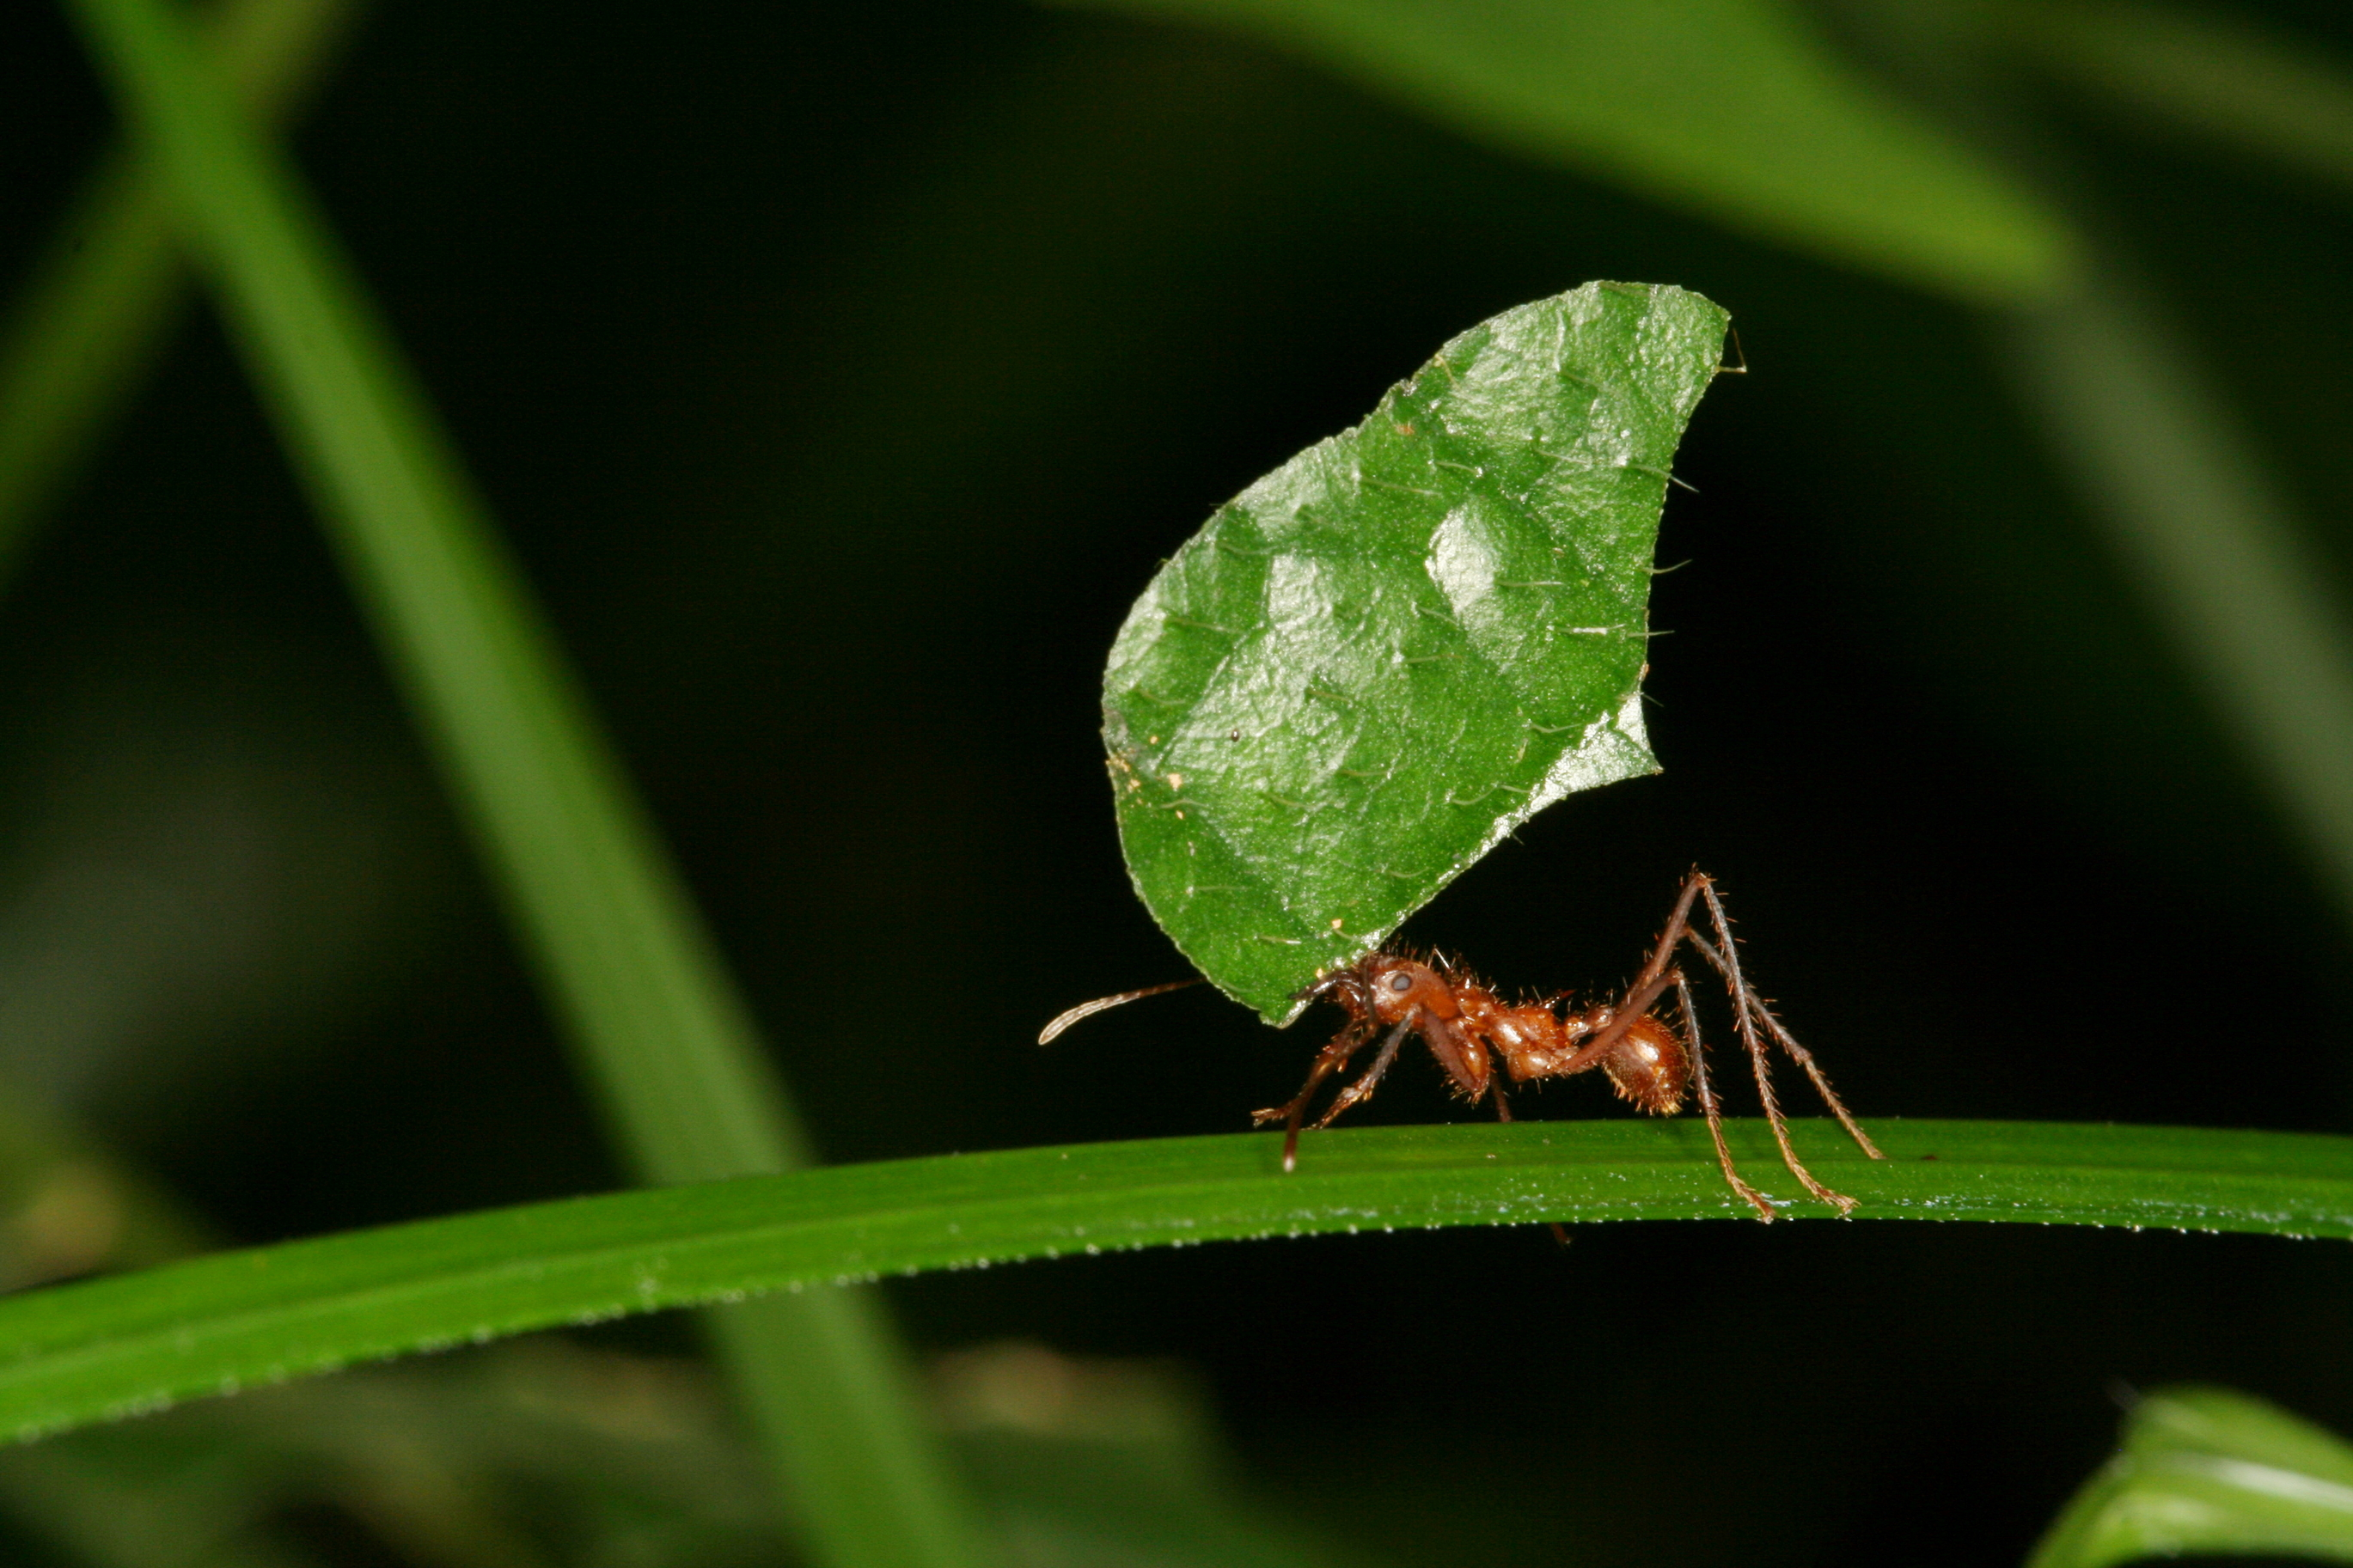 2738x1825 - Ant Wallpapers 21